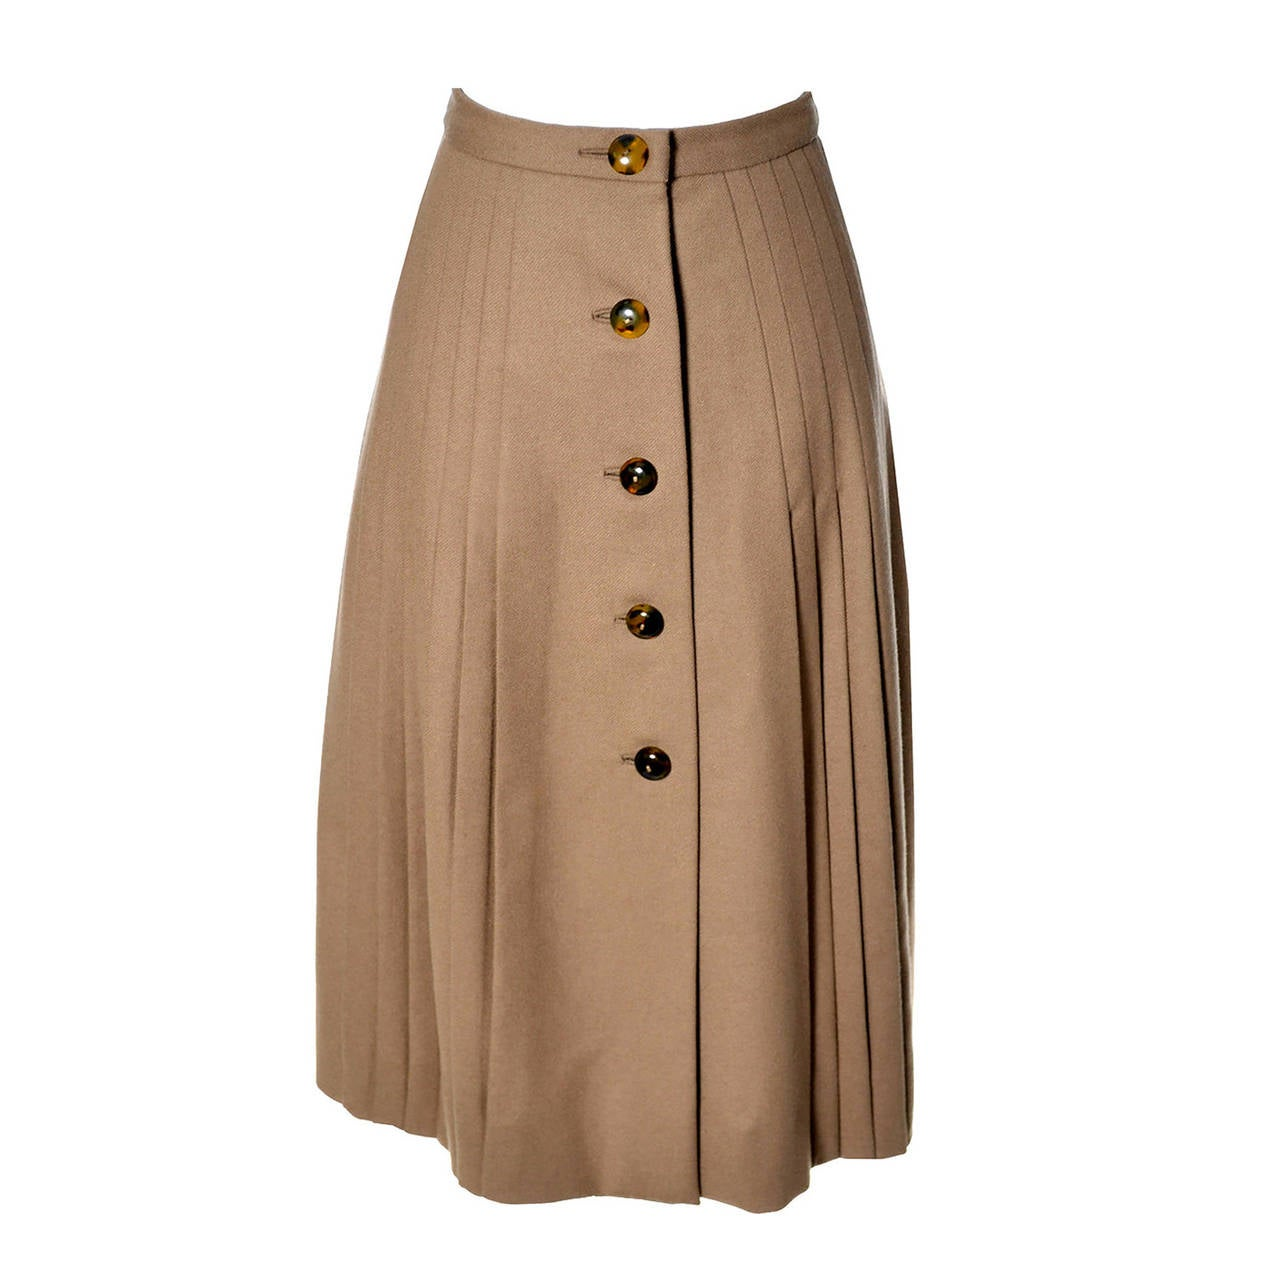 Valentino Vintage Skirt Older Label Boutique Camel Wool 1960s 1